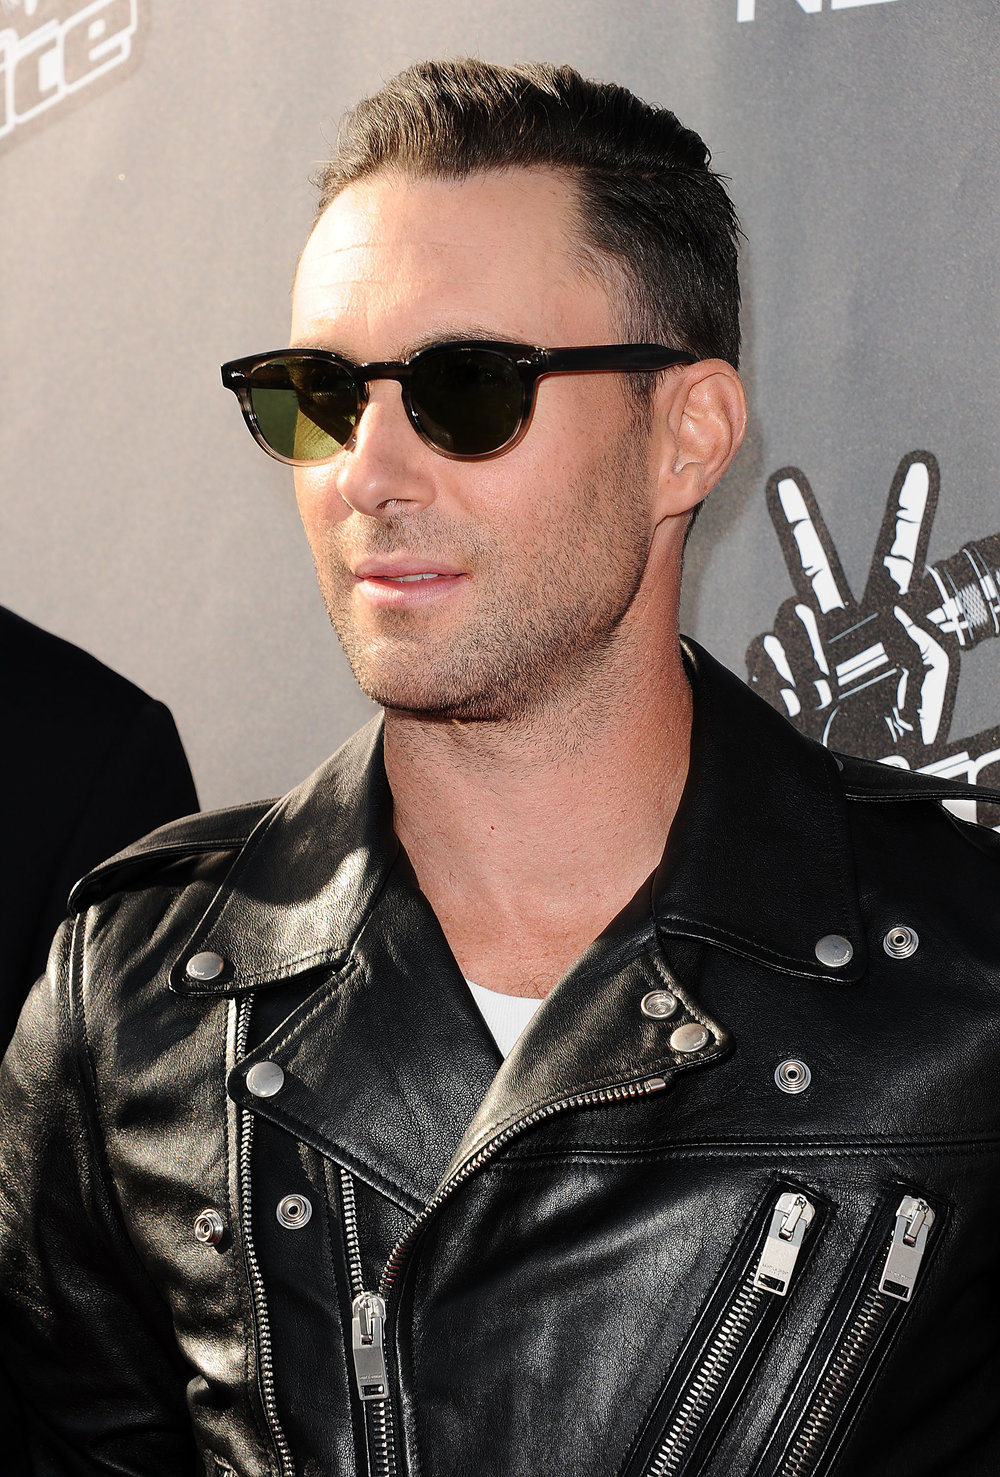 Adam levine new haircut 2014